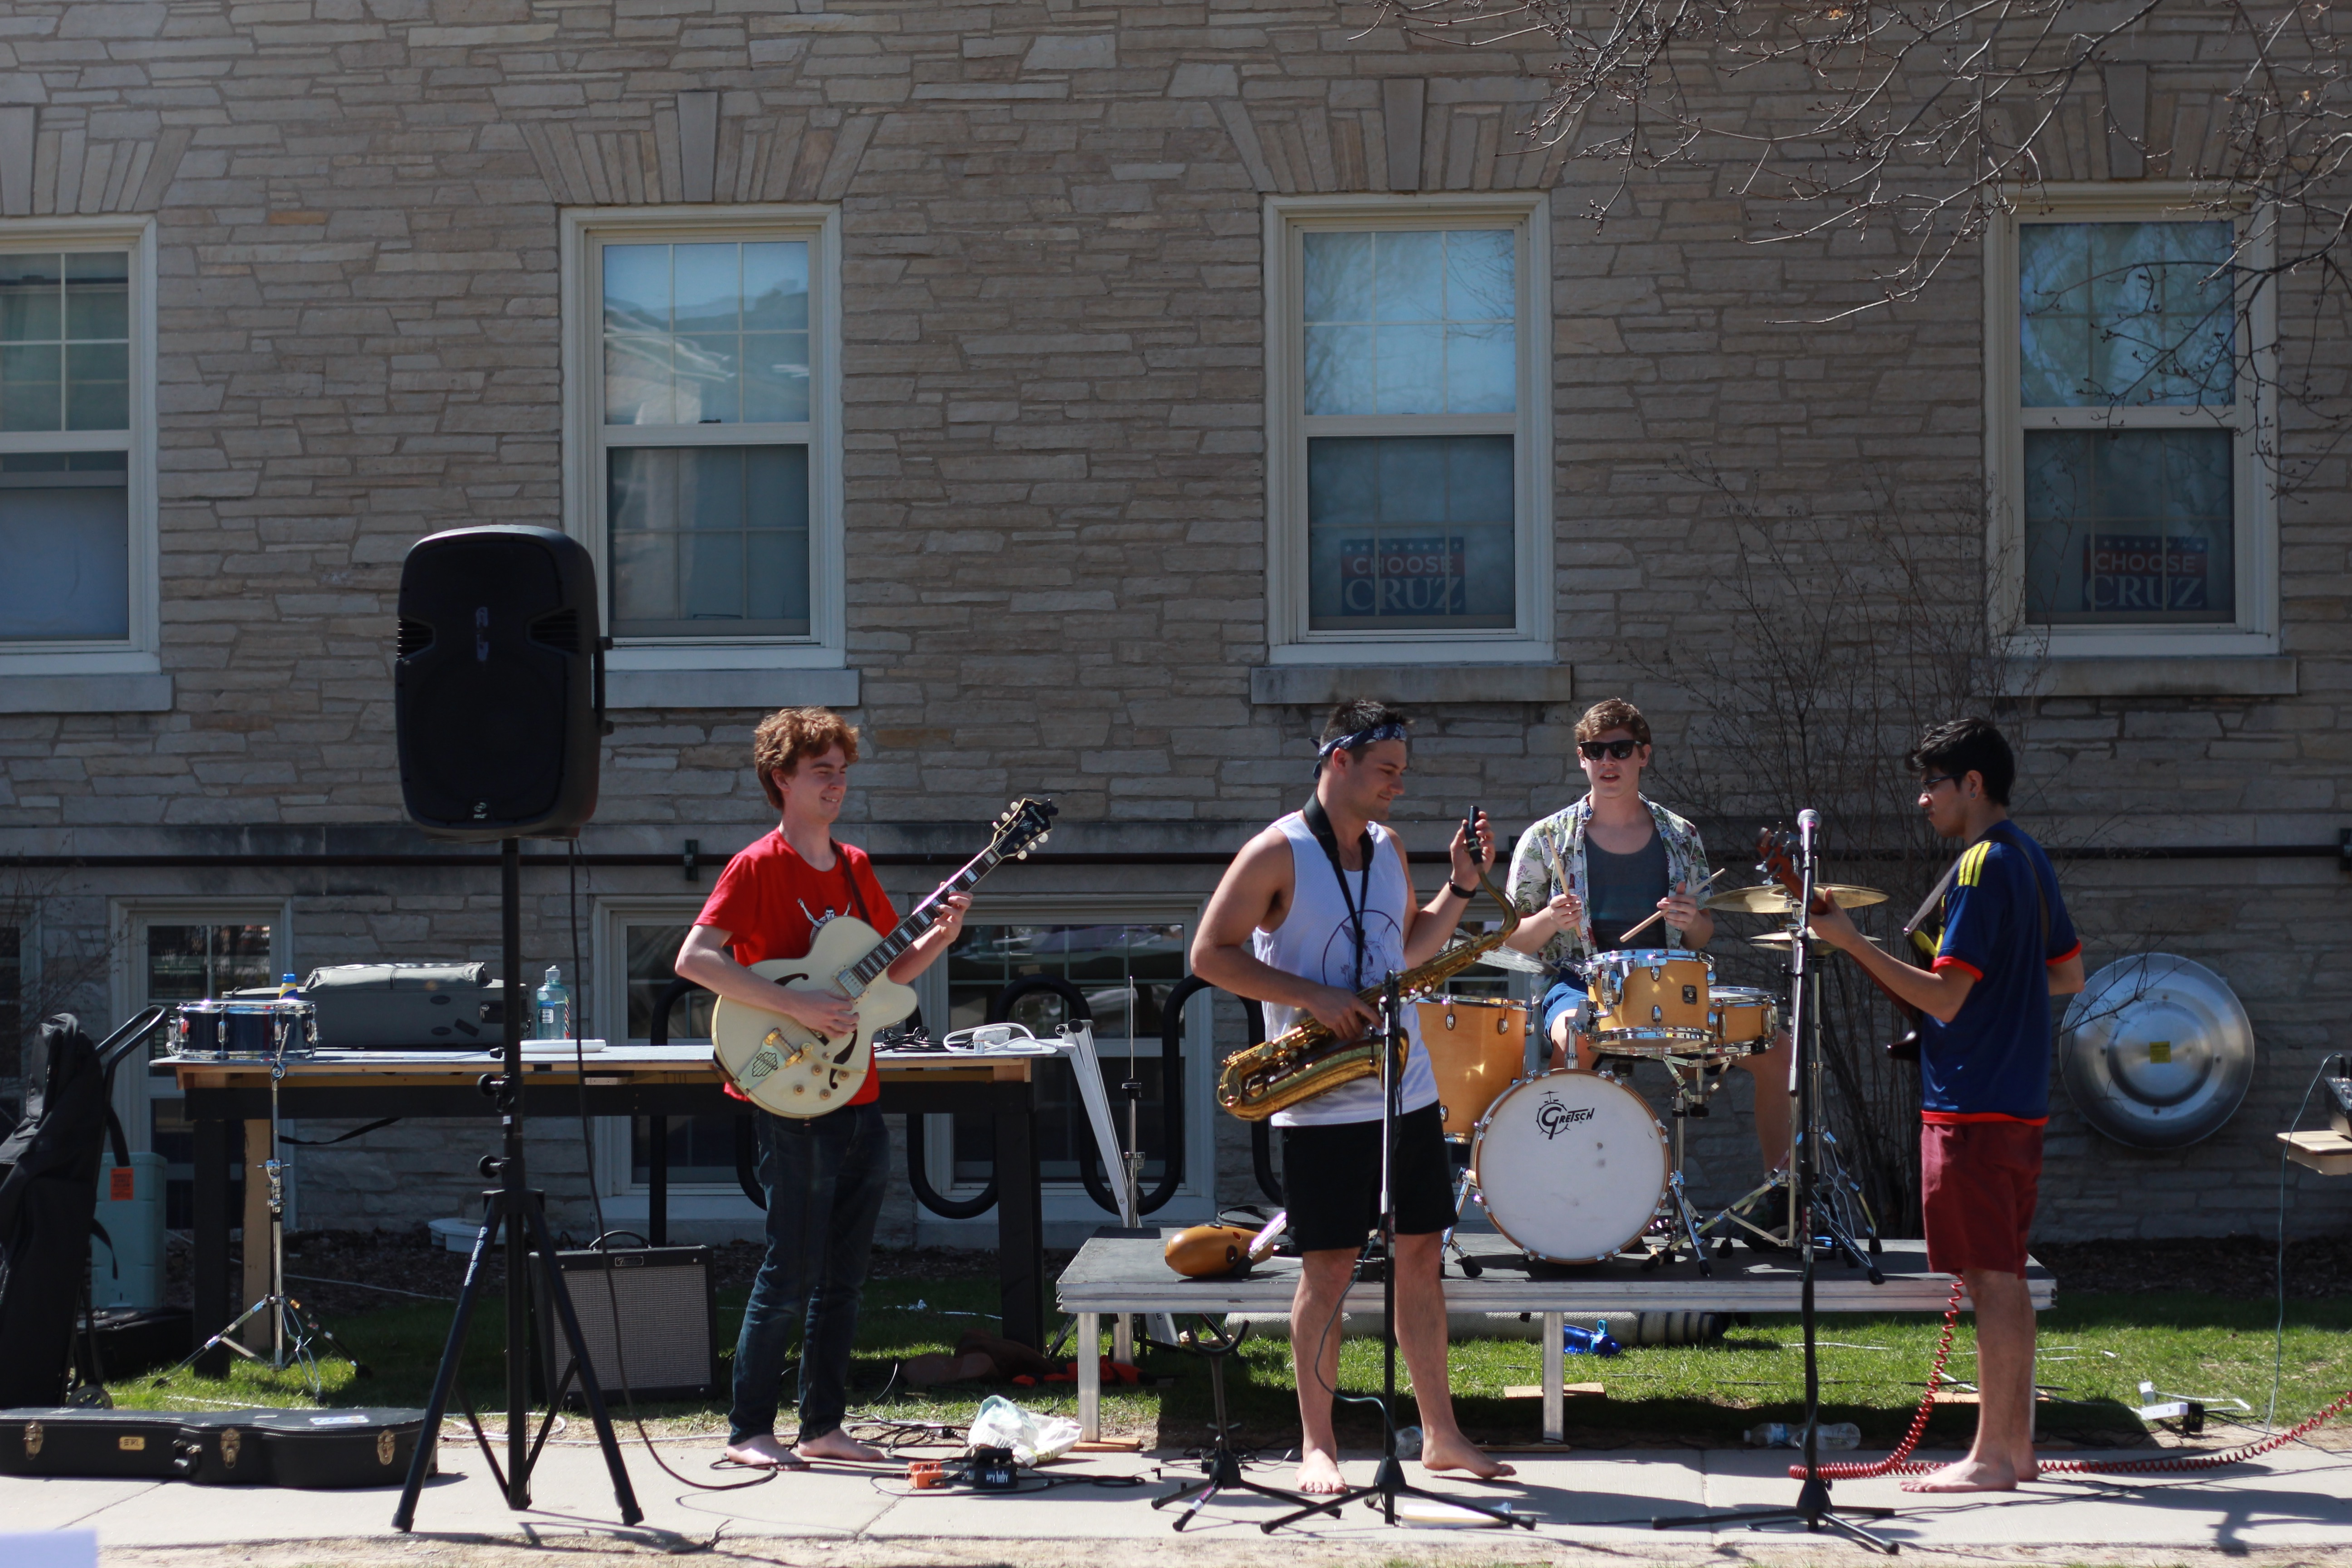 Campus band Rat Pack performs at Relay for Life on Saturday, April 16.